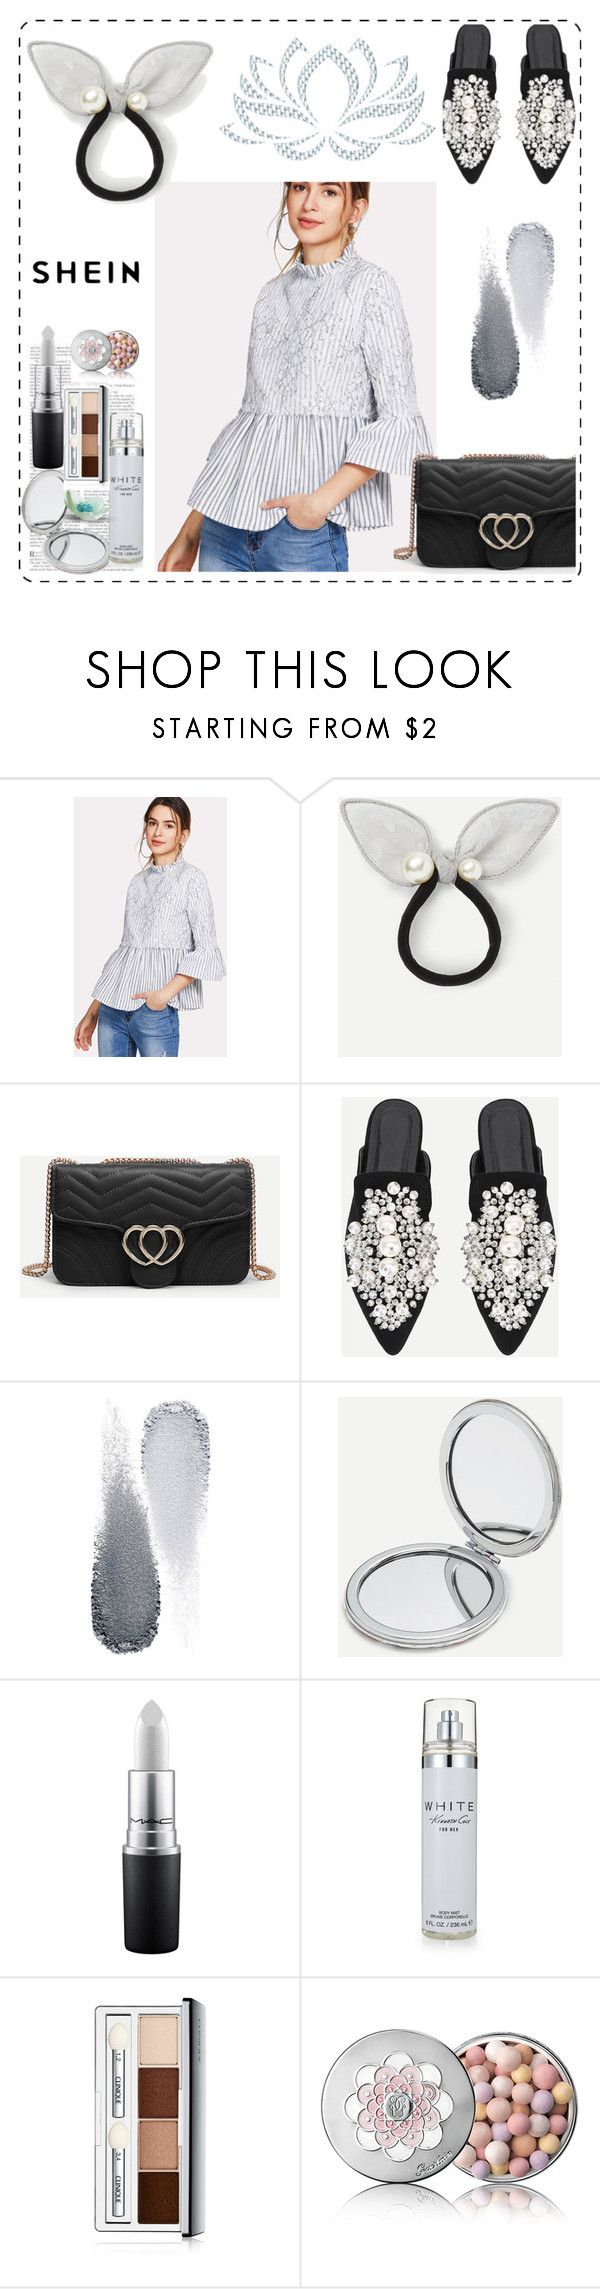 """SHEIN Floral Lace Applique Striped Smock Top"" by raniaainar ❤ liked on Polyvore featuring Clé de Peau Beauté, Kenneth Cole, Clinique and Guerlain"